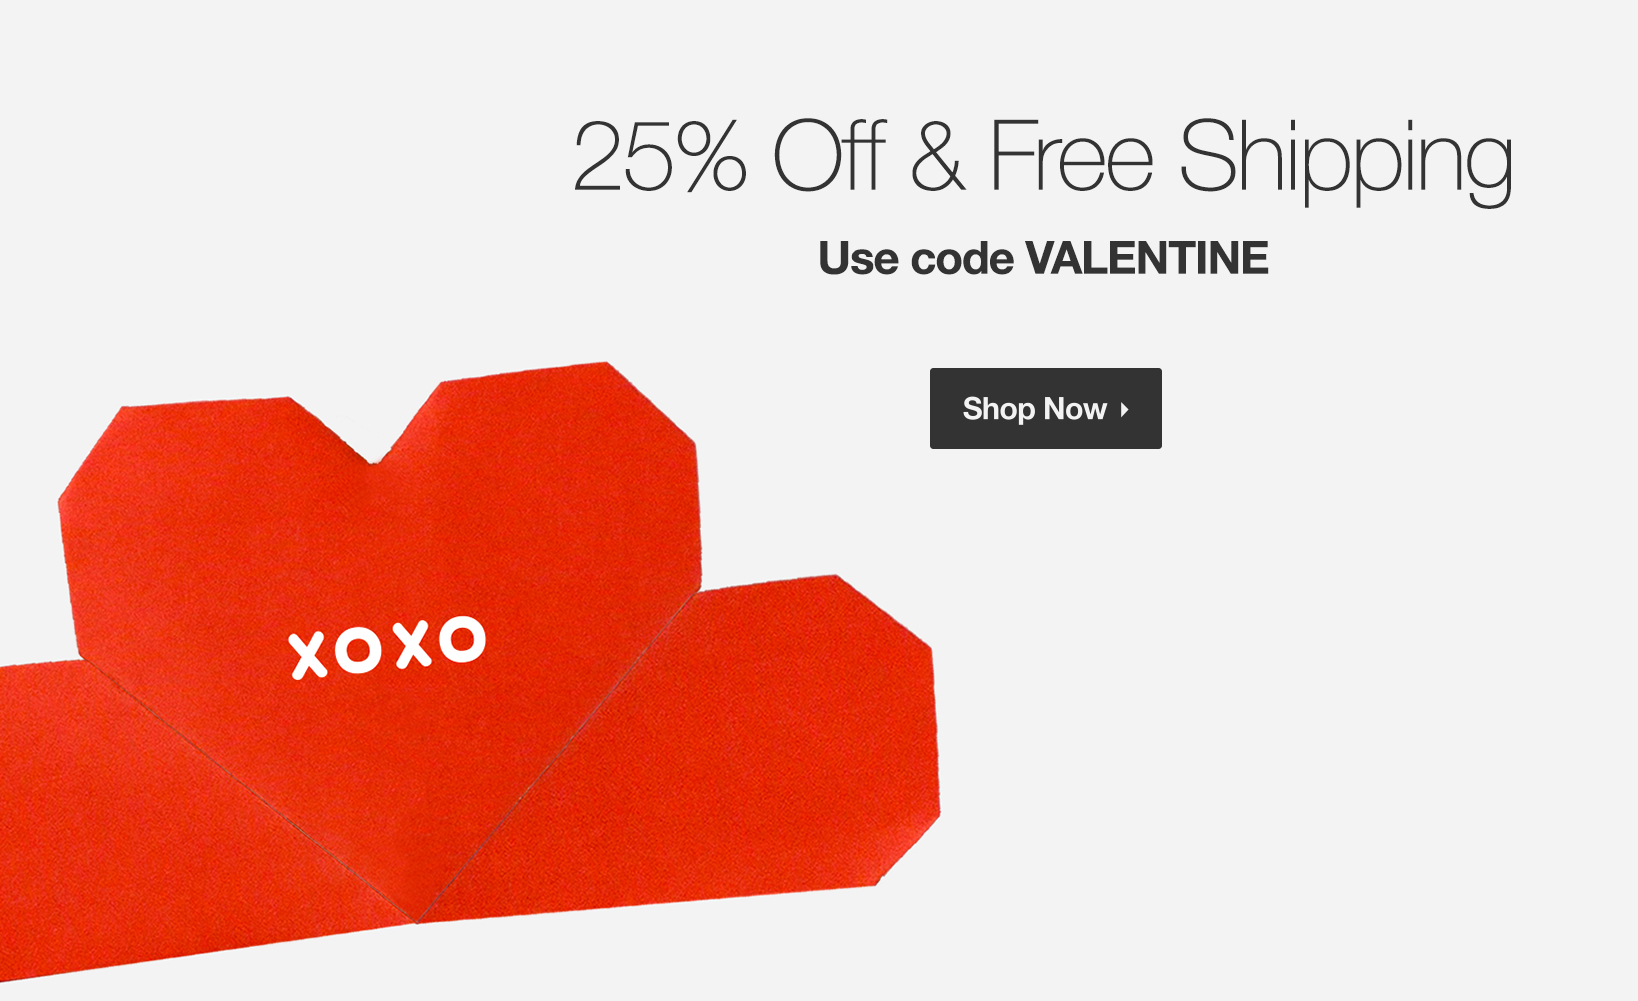 Valentine's Day 2-Day Shipping Cutoff - Snaps: A Blog from SnapBox